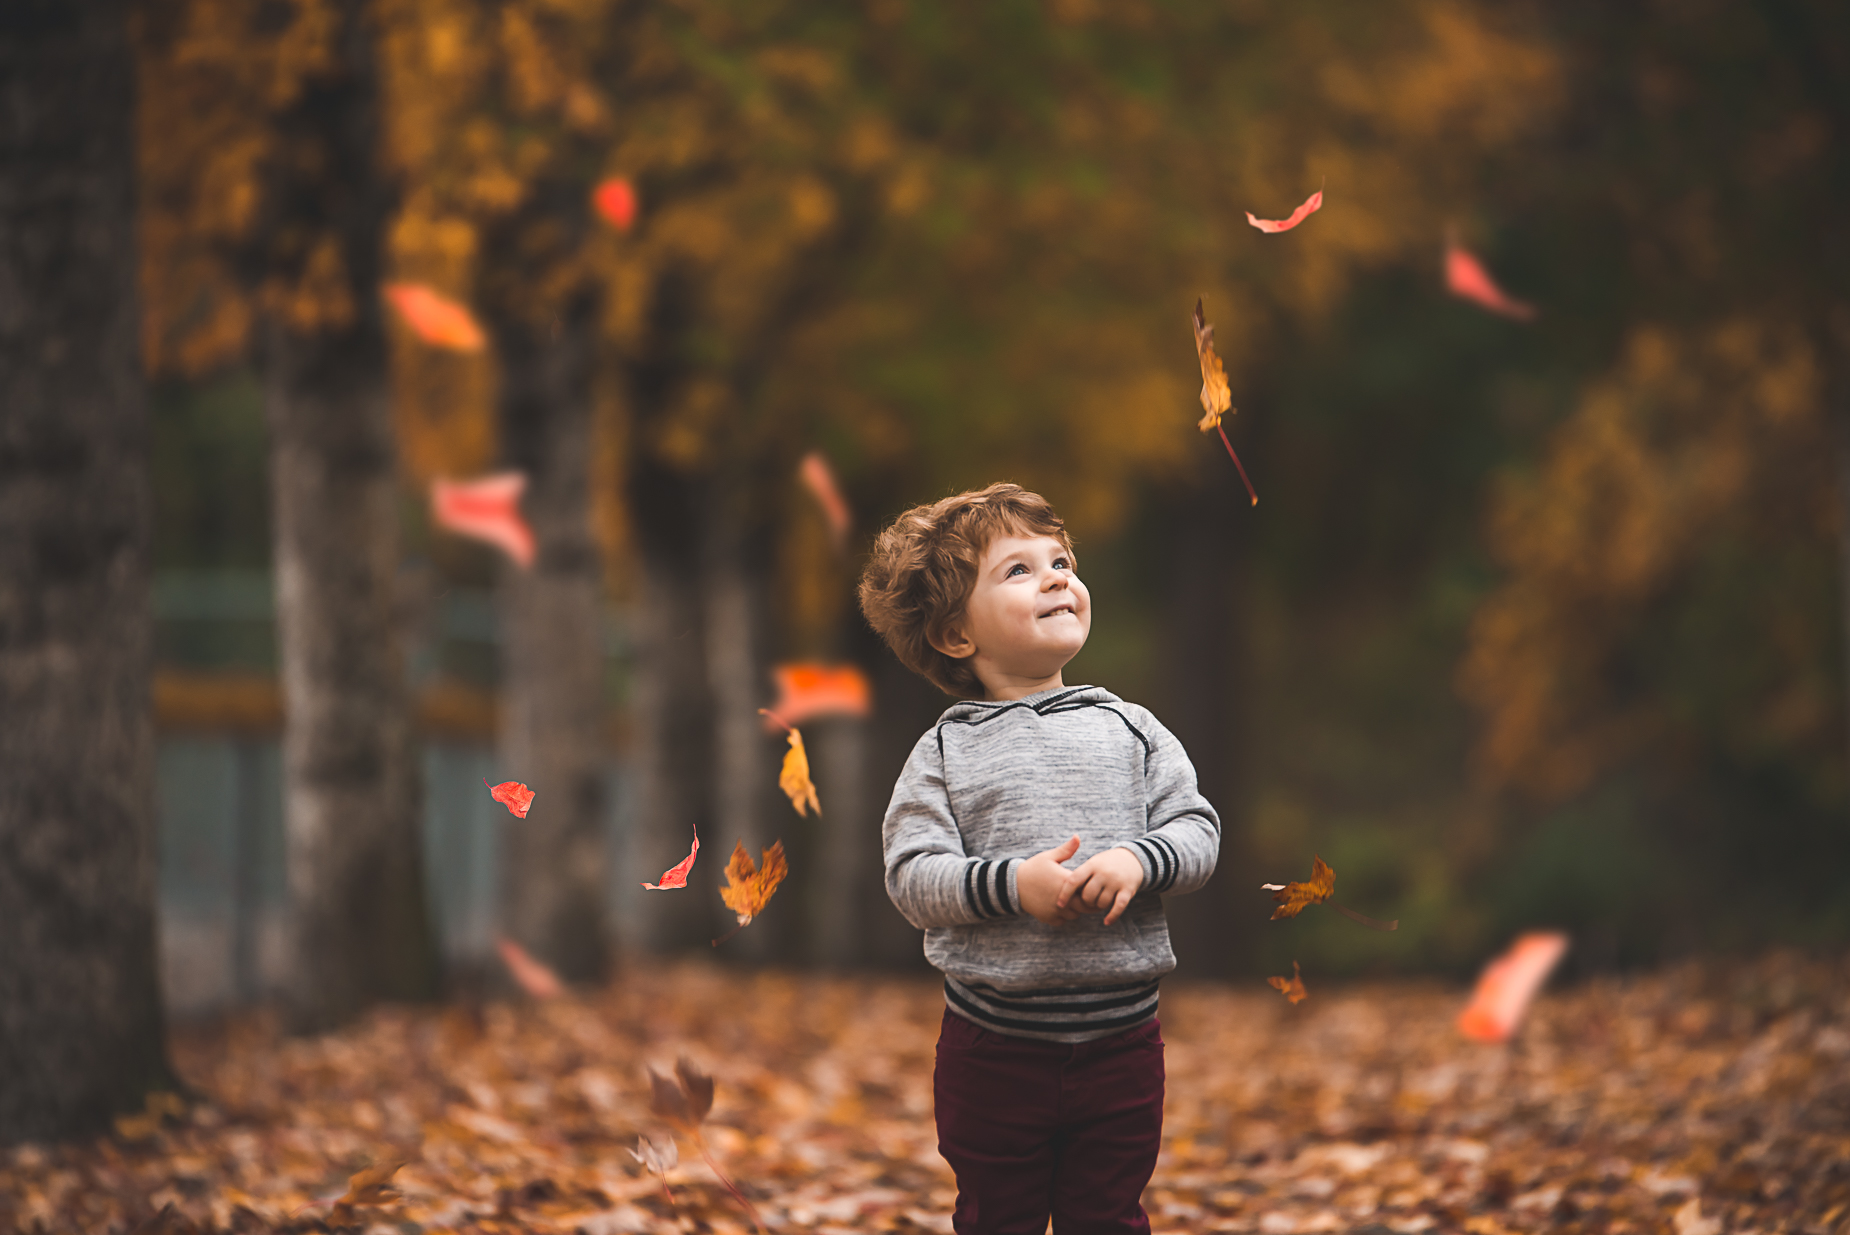 A young boy is smiling at the leaves falling around him by Bellevue Family Photographer